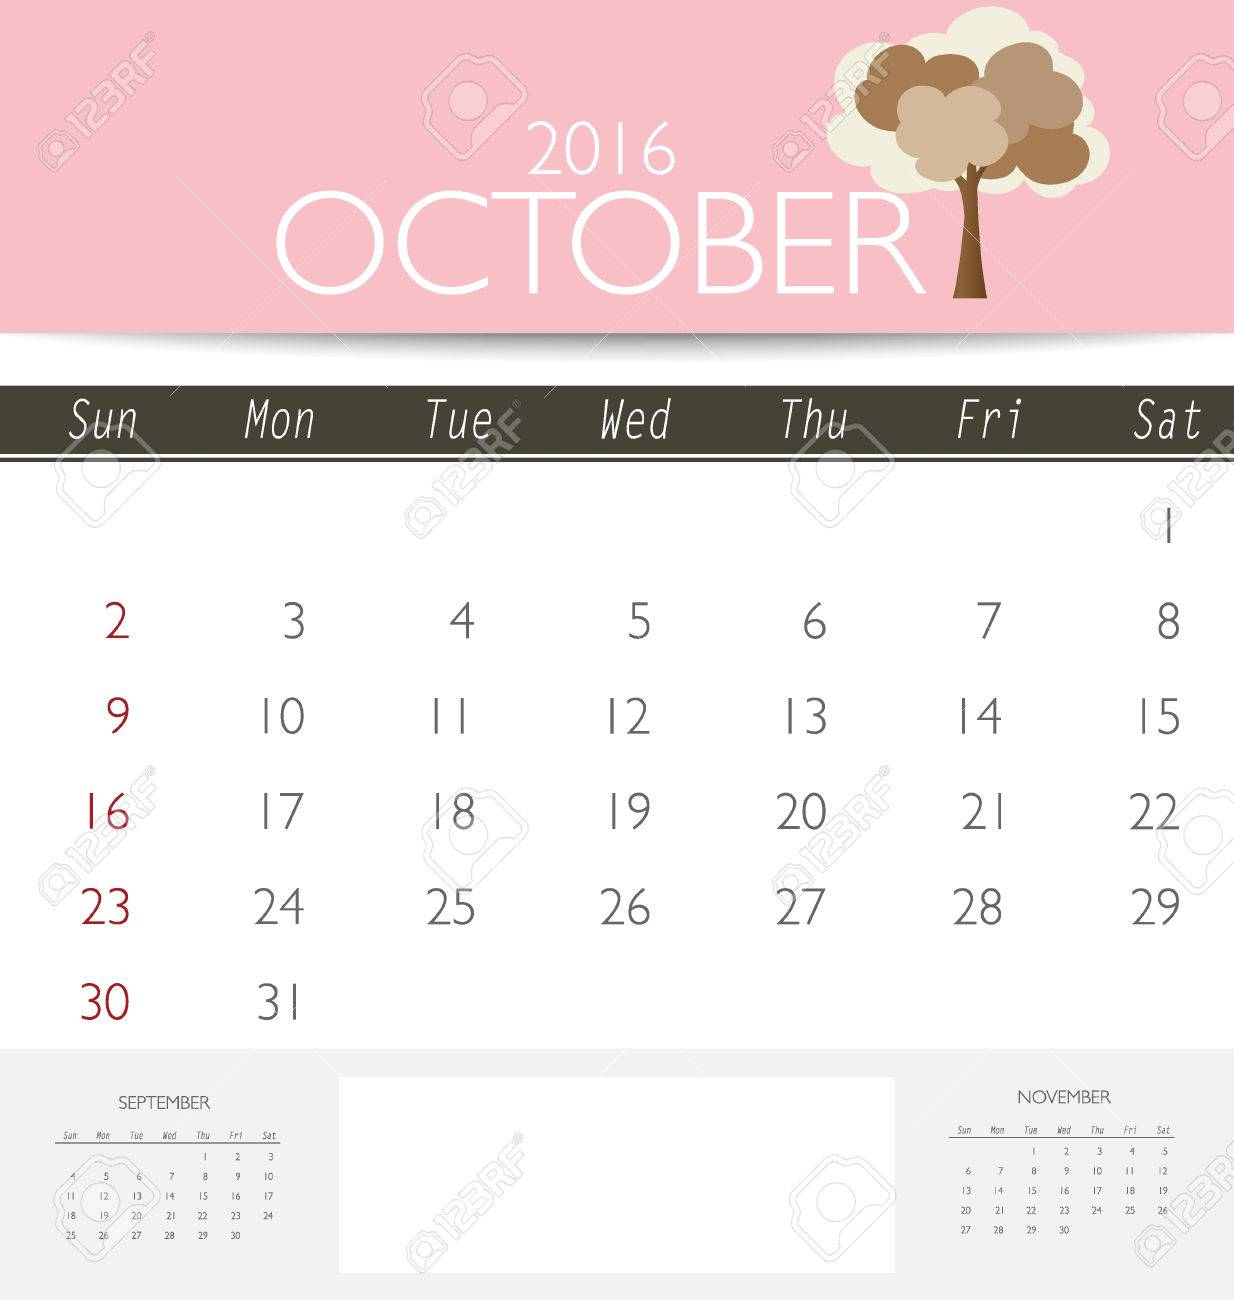 2016 Calendar  Monthly Calendar Template For October  Vector     2016 calendar  monthly calendar template for October  Vector illustration   Stock Vector   45980259